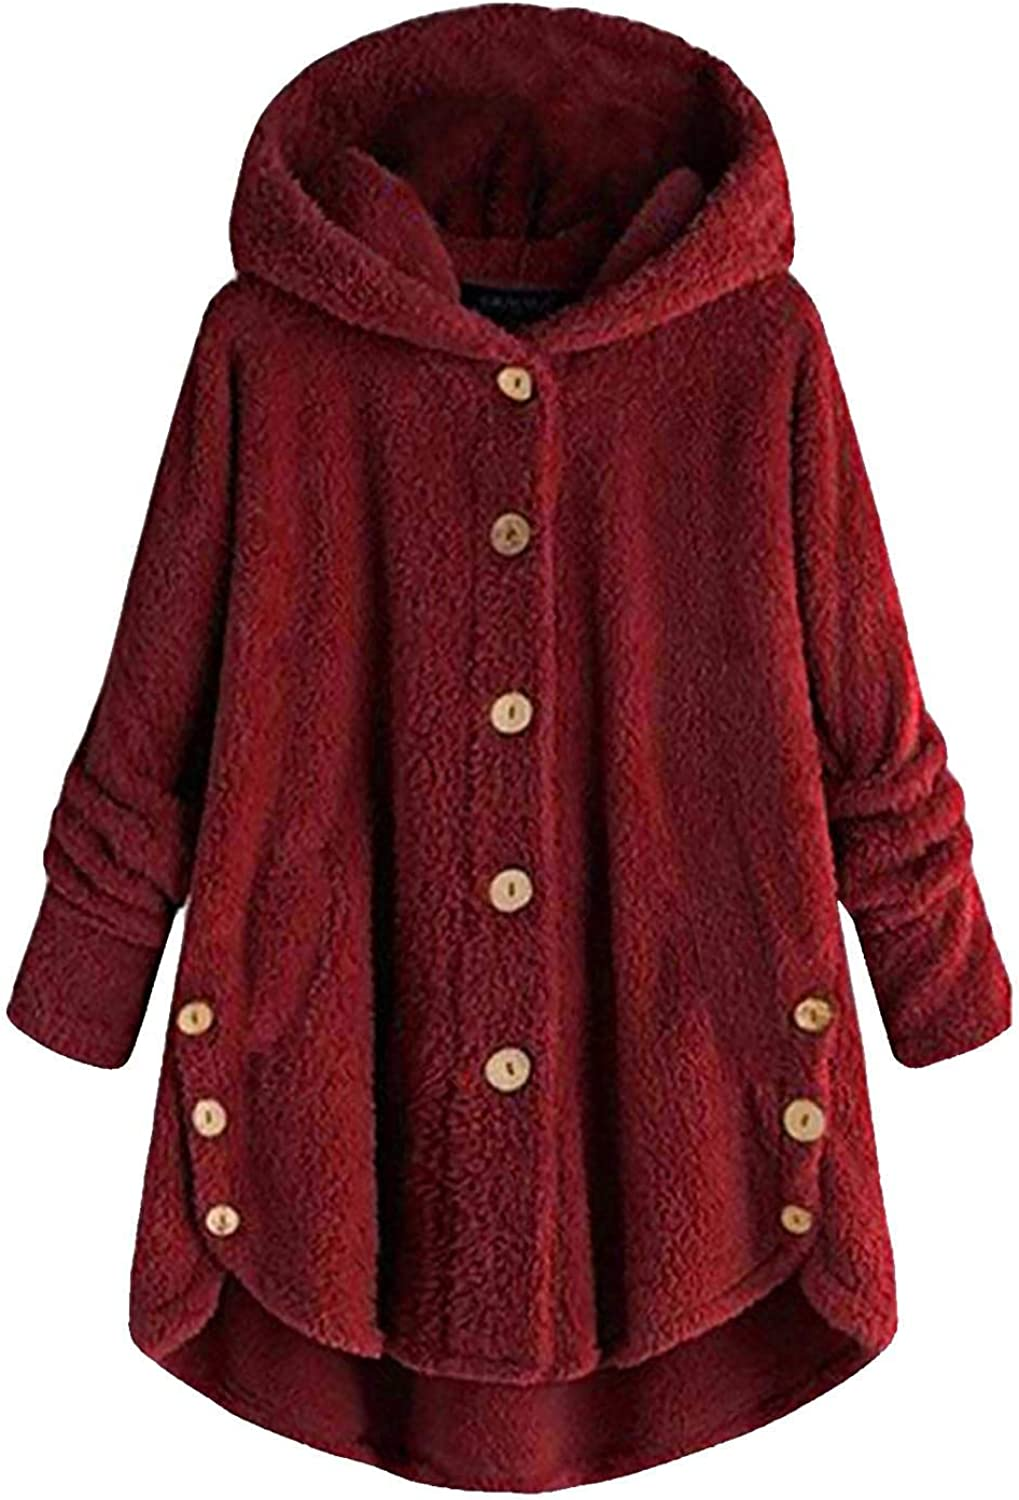 Coupondeal Women Plus Size Button Plush Tops Hooded Loose Cardigan Wool Coat Winter Solid Jacket